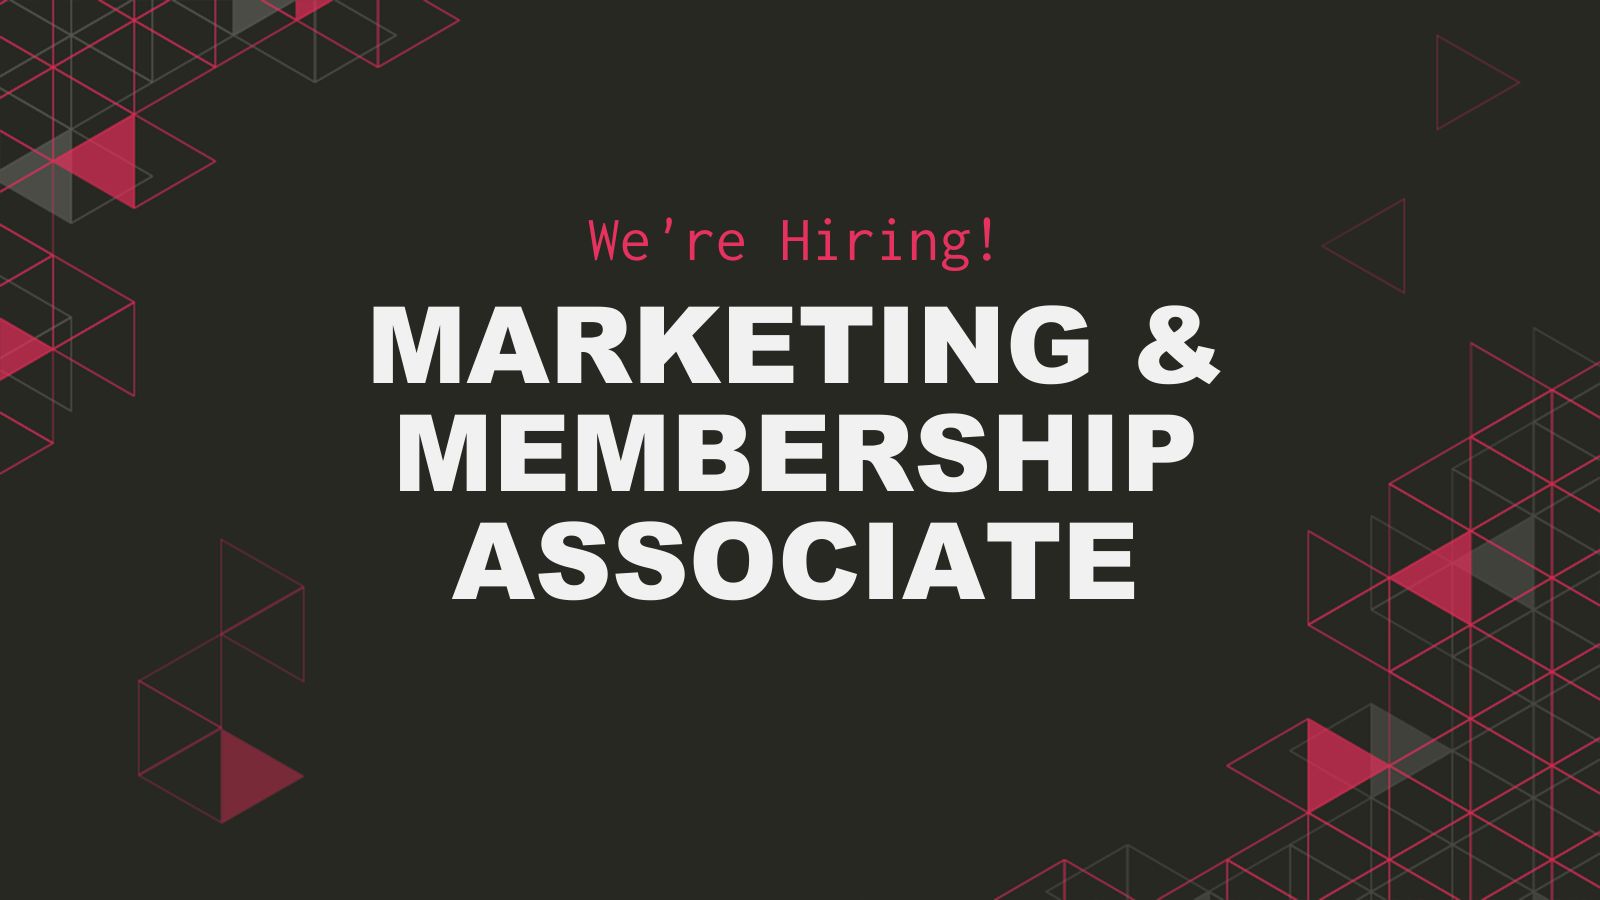 , Marketing & Membership Associate Opportunity With #OMGKRK